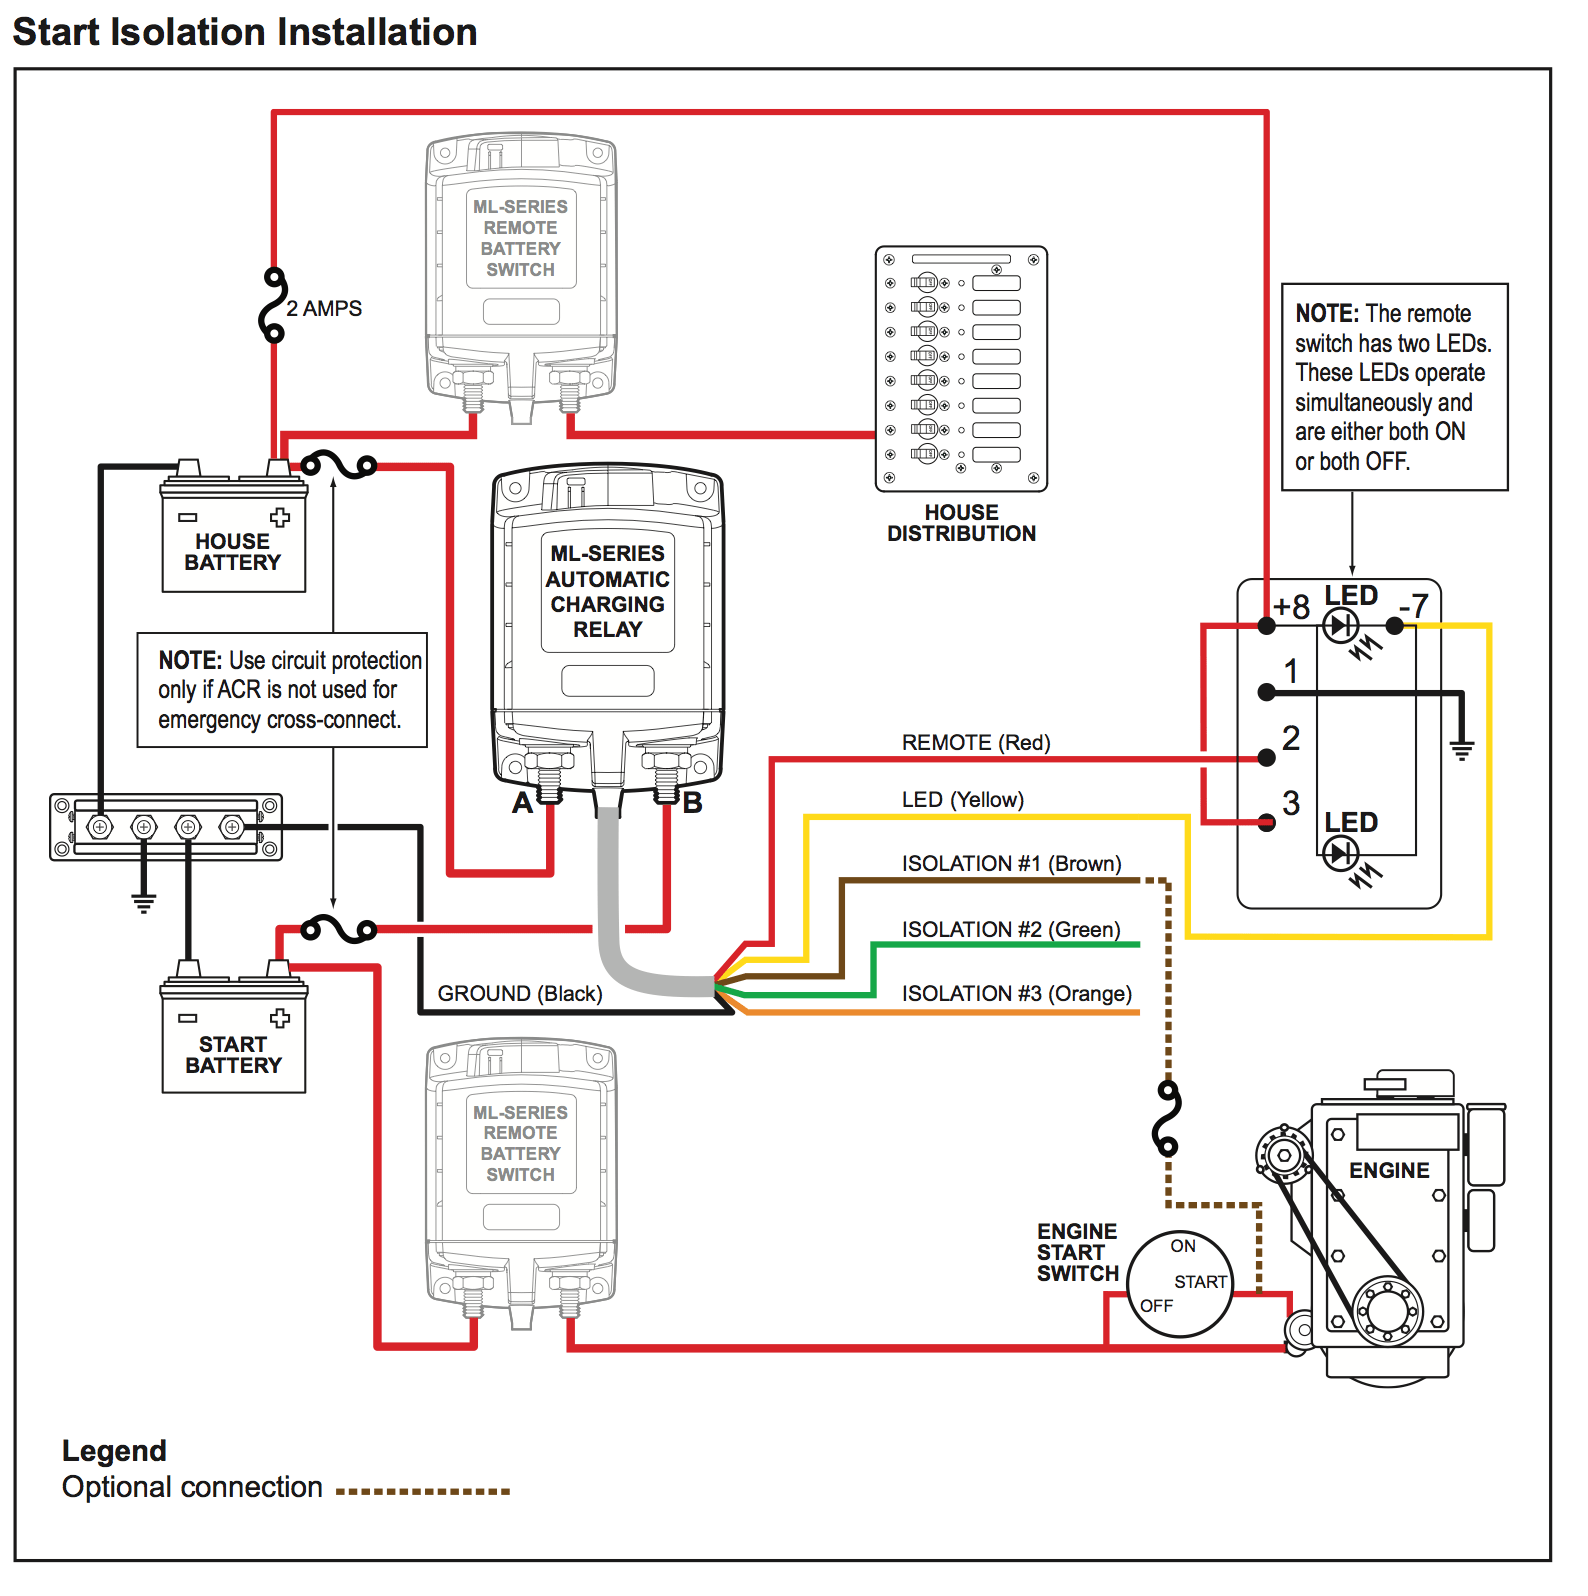 Dual battery boat wiring diagram solar panel home springers boat center console wiring diagram small resolution of dual battery boat wiring diagram solar panel